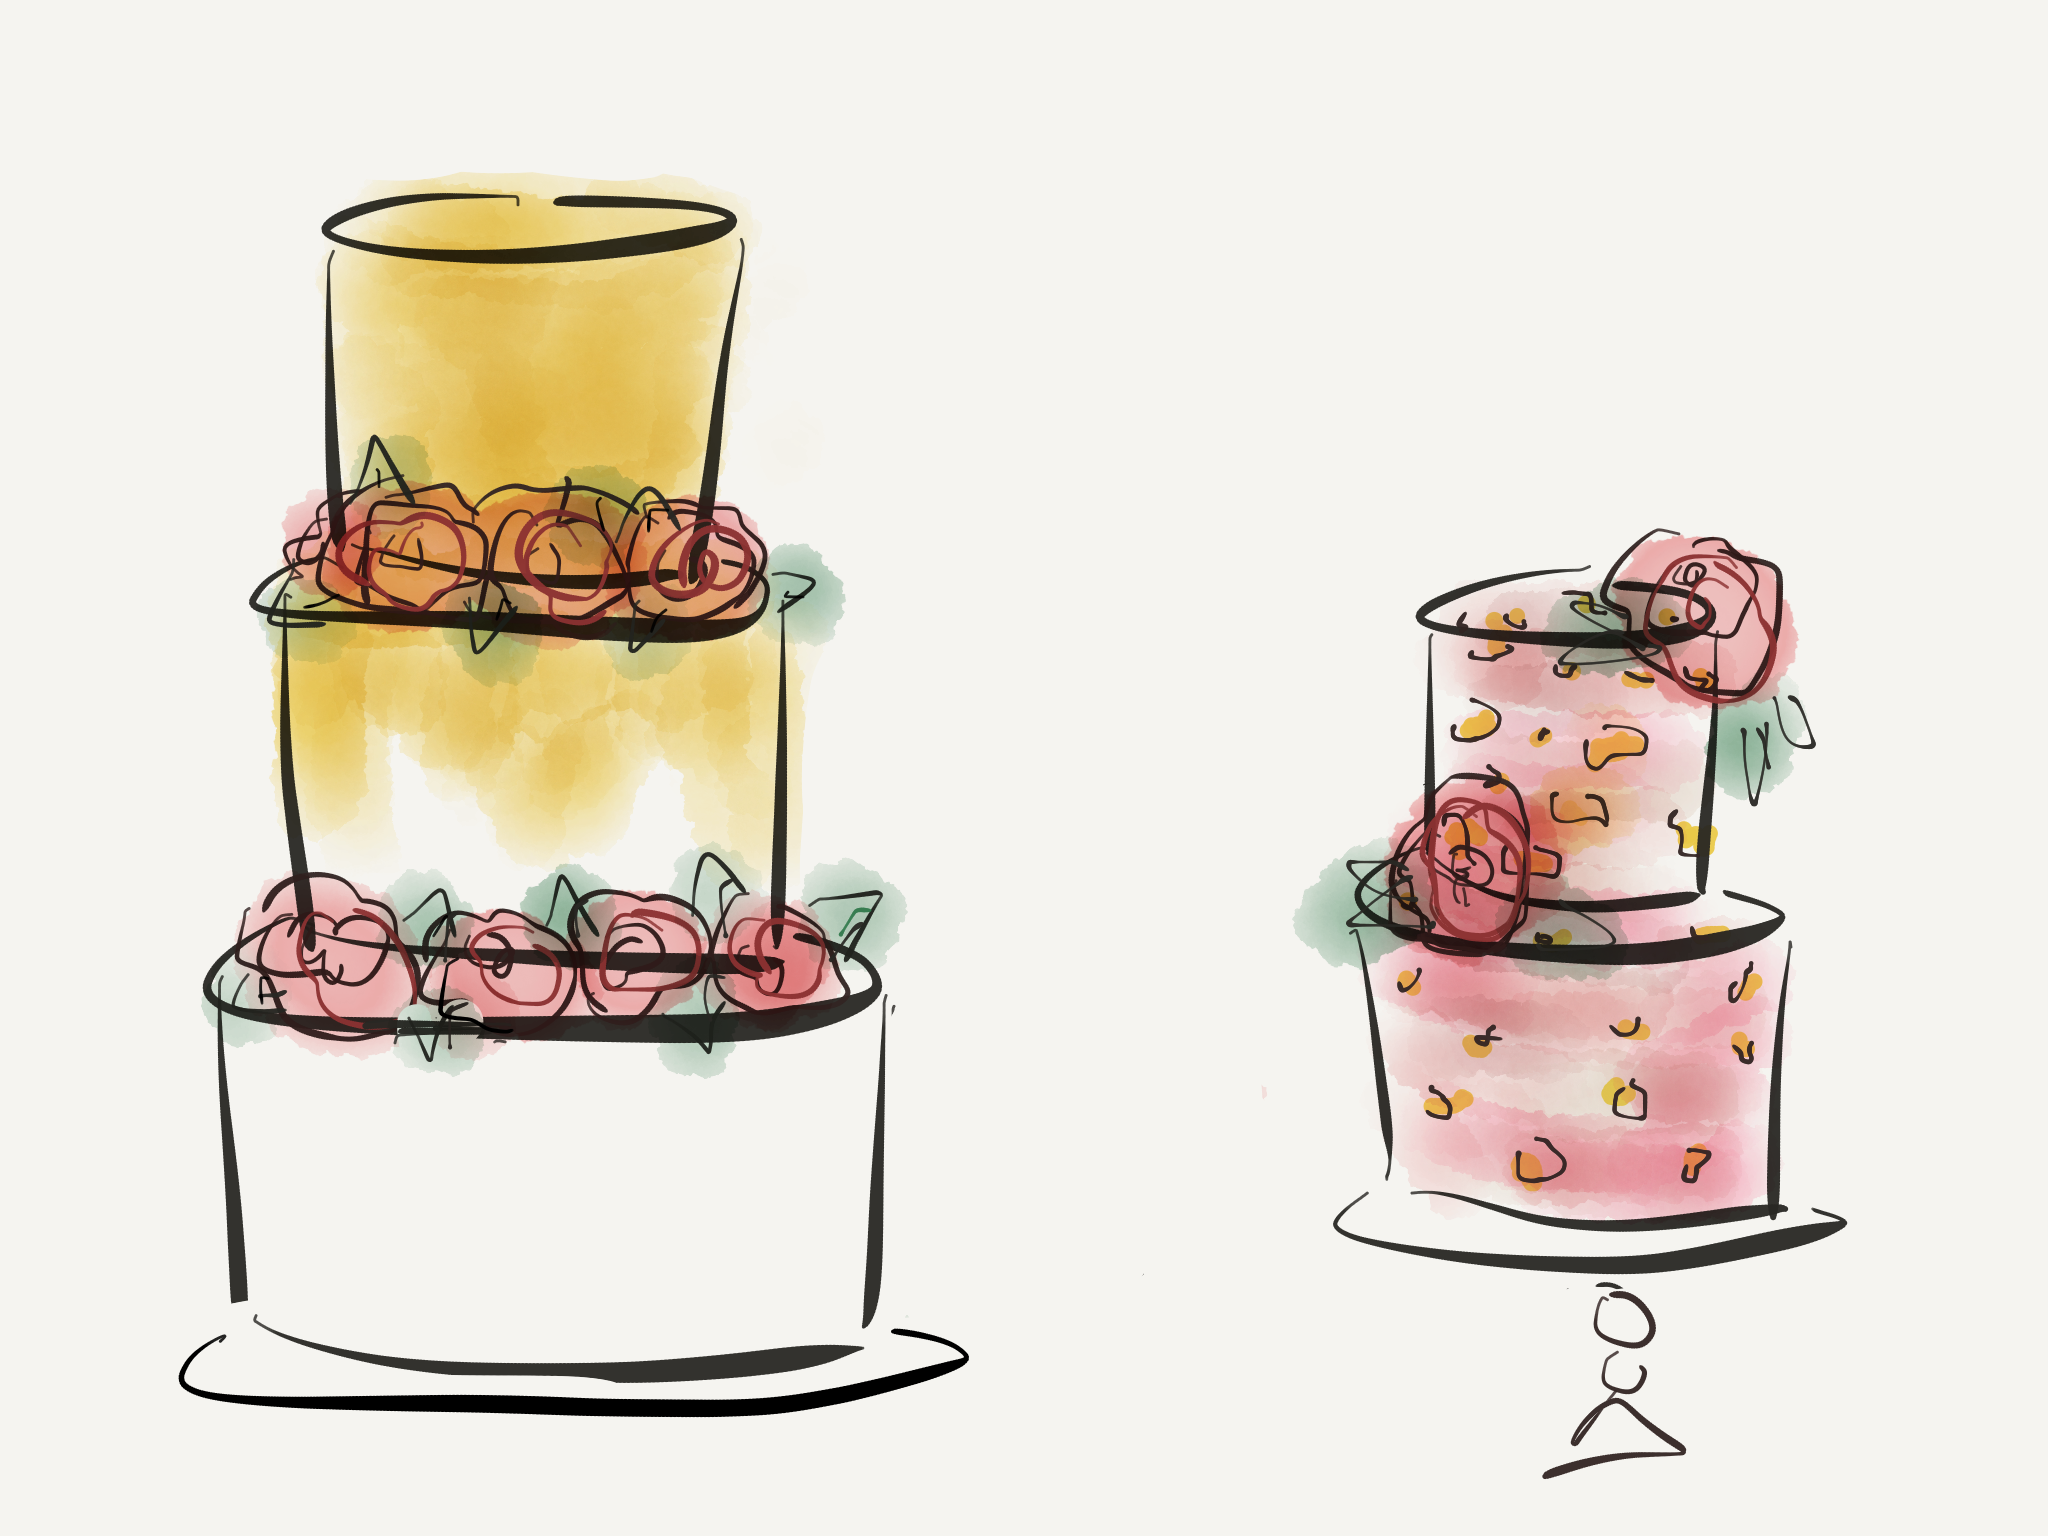 Cake(s) Sketches 4_8.png